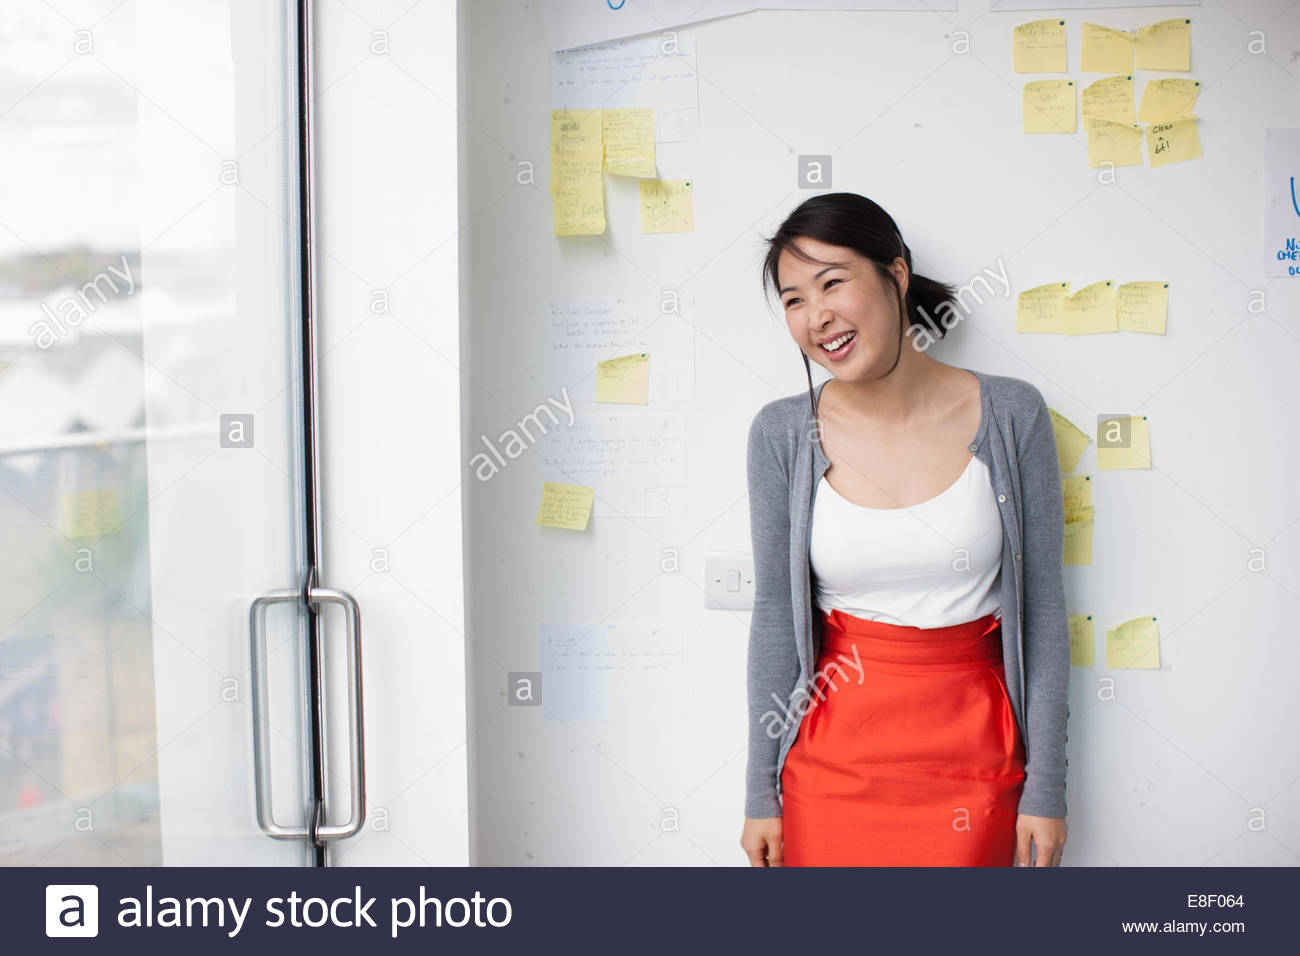 Smiling businesswoman with en face de tableau blanc avec des notes adhésives Photo Stock